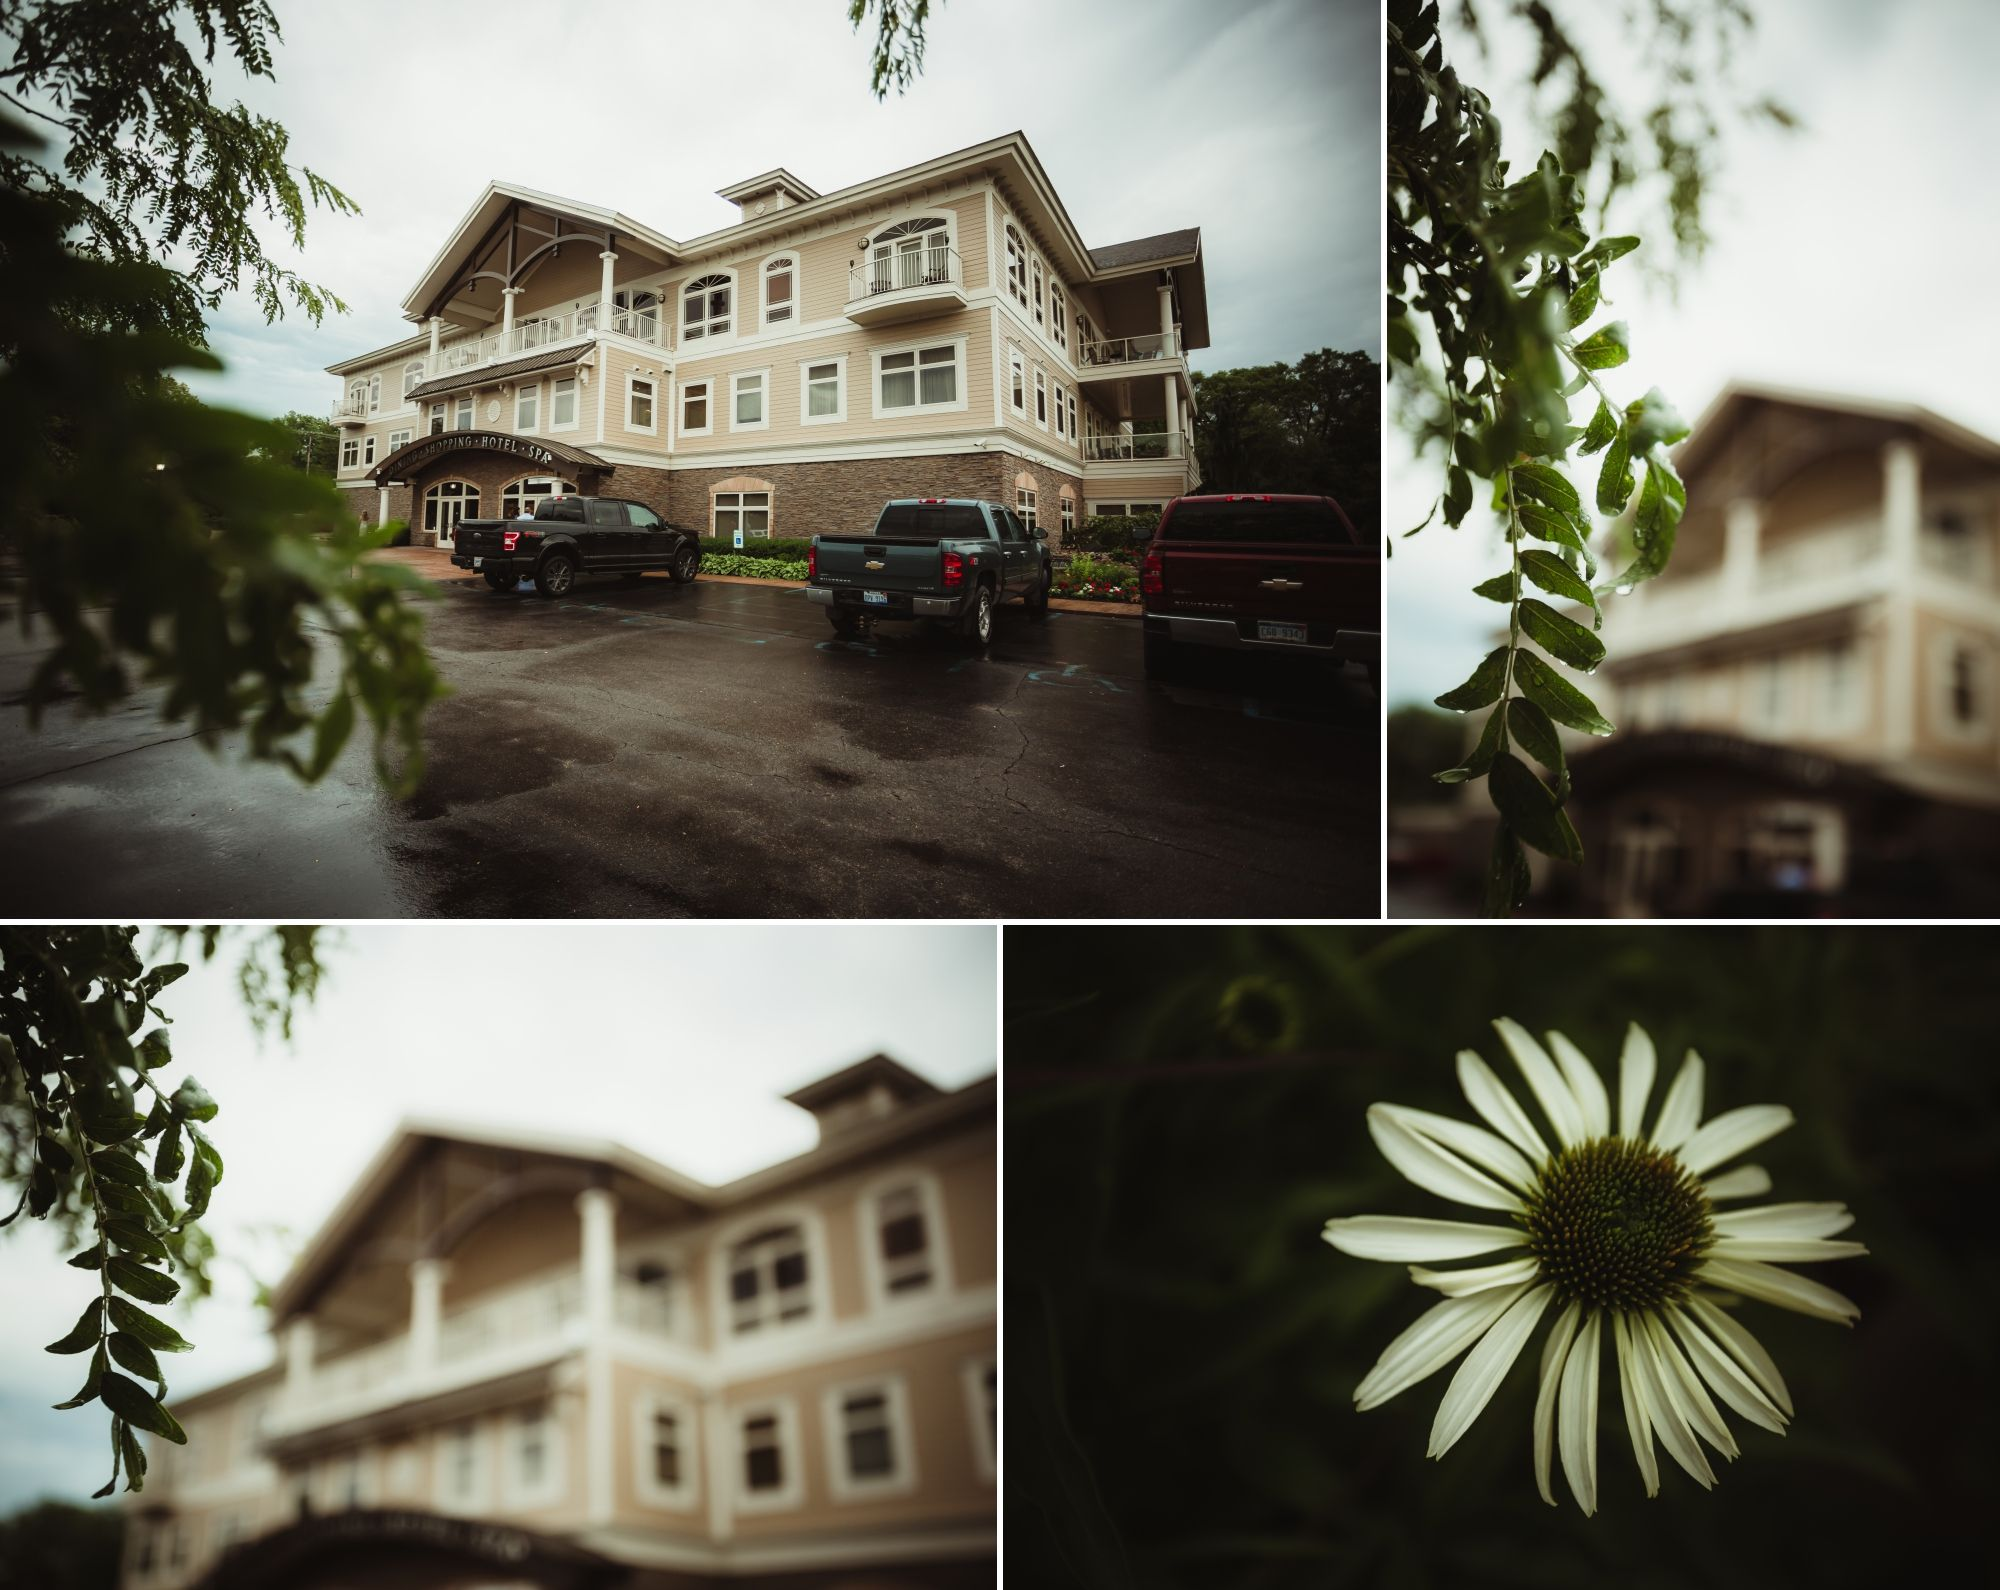 Photos of the outside of the hotel, a white flower, and water droplets on leaves on a tree.